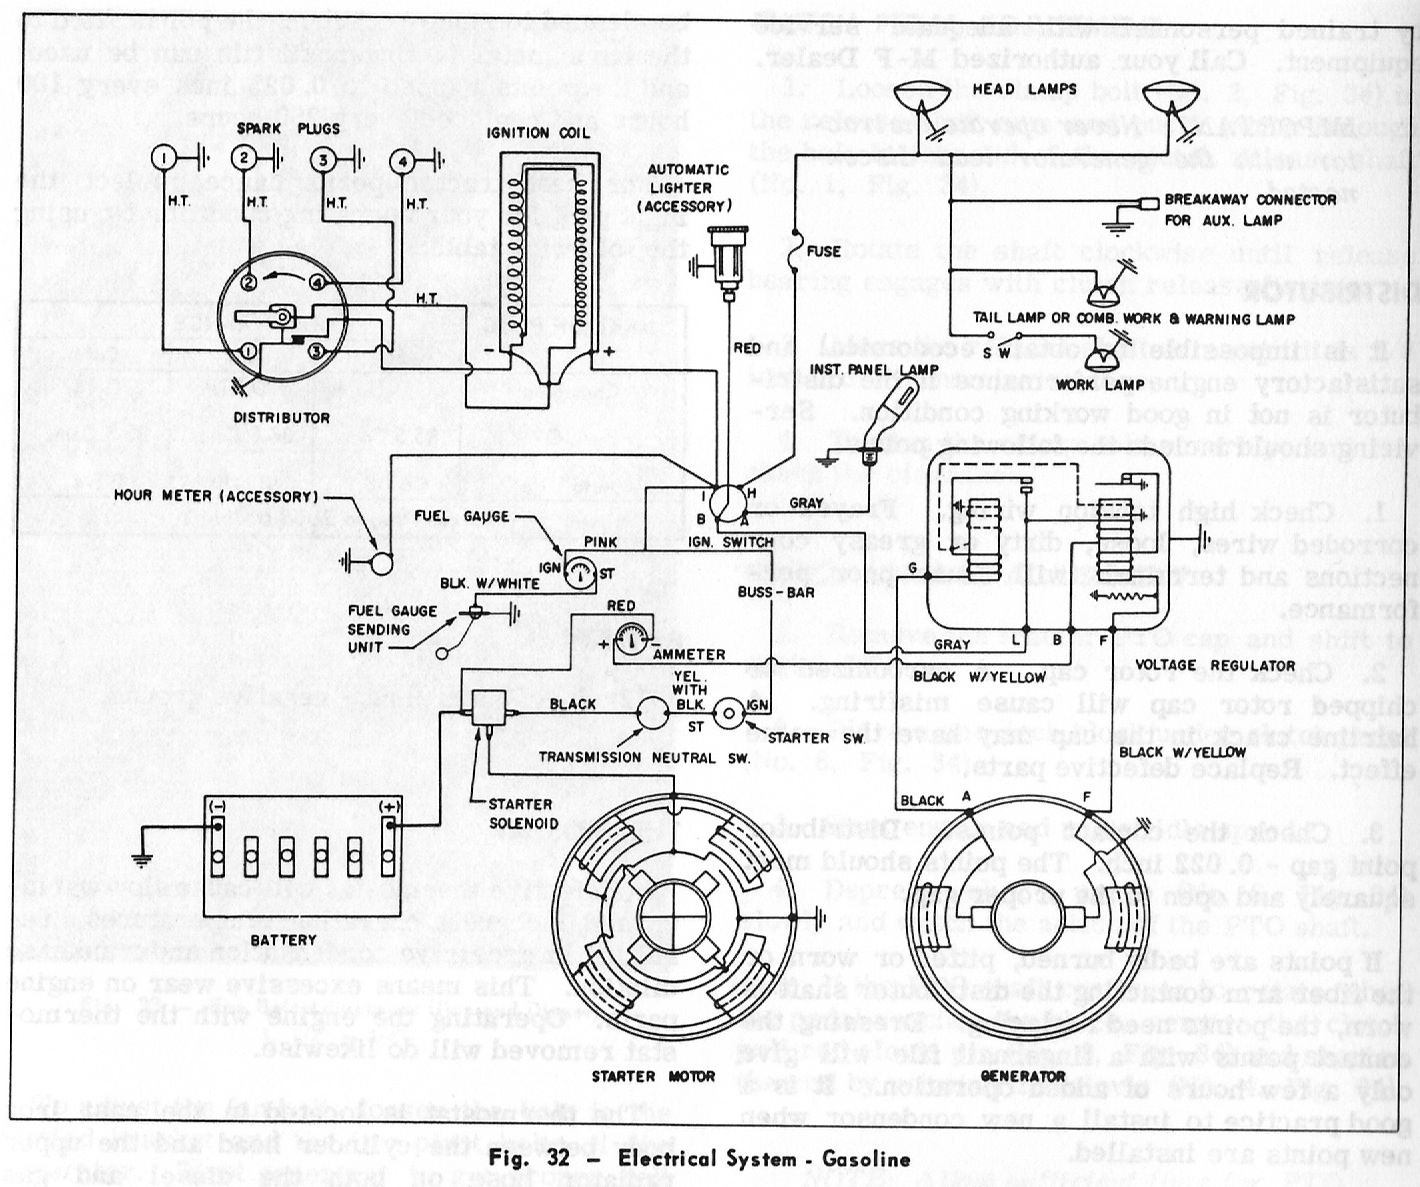 an idiots guide to the massey ferguson 65 gas engine electrical diagram rh idiotsmf65 blogspot com massey ferguson 65 ignition wiring diagram massey ferguson 65 starter wiring diagram